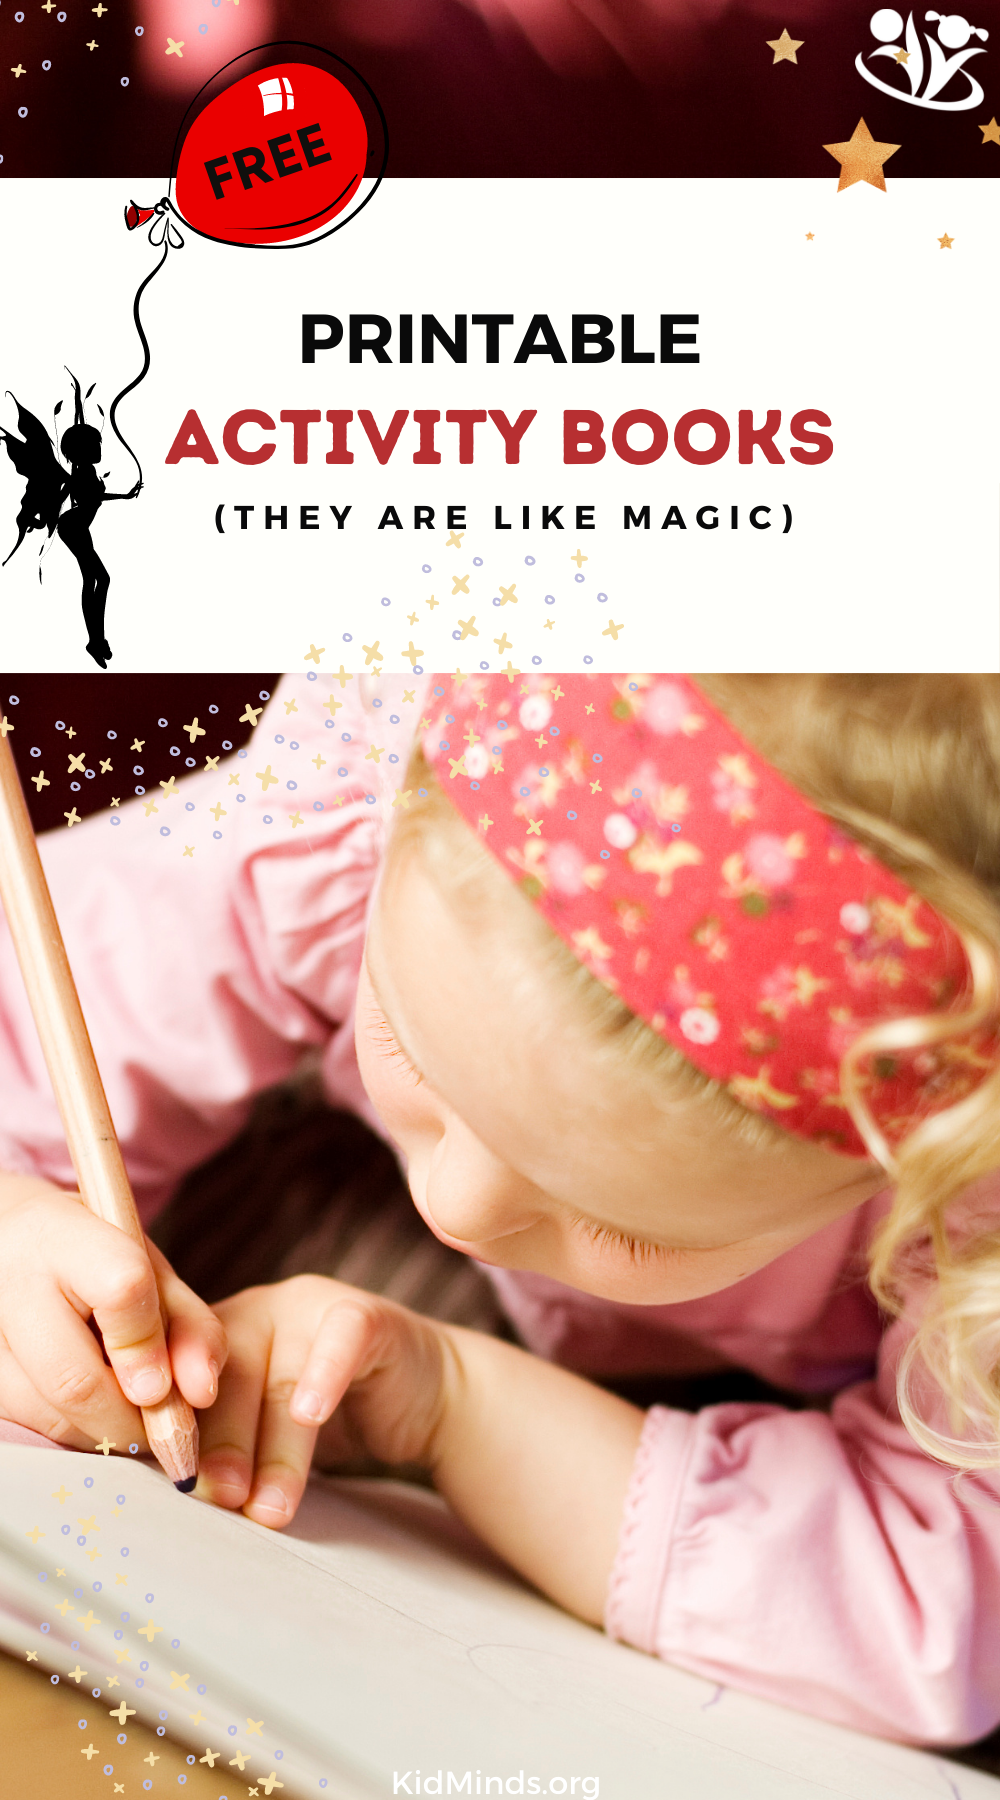 My printable activity books are designed to keep your kids busy and learning. And they are absolutely FREE! #kidsactivities #printables #boredombusters